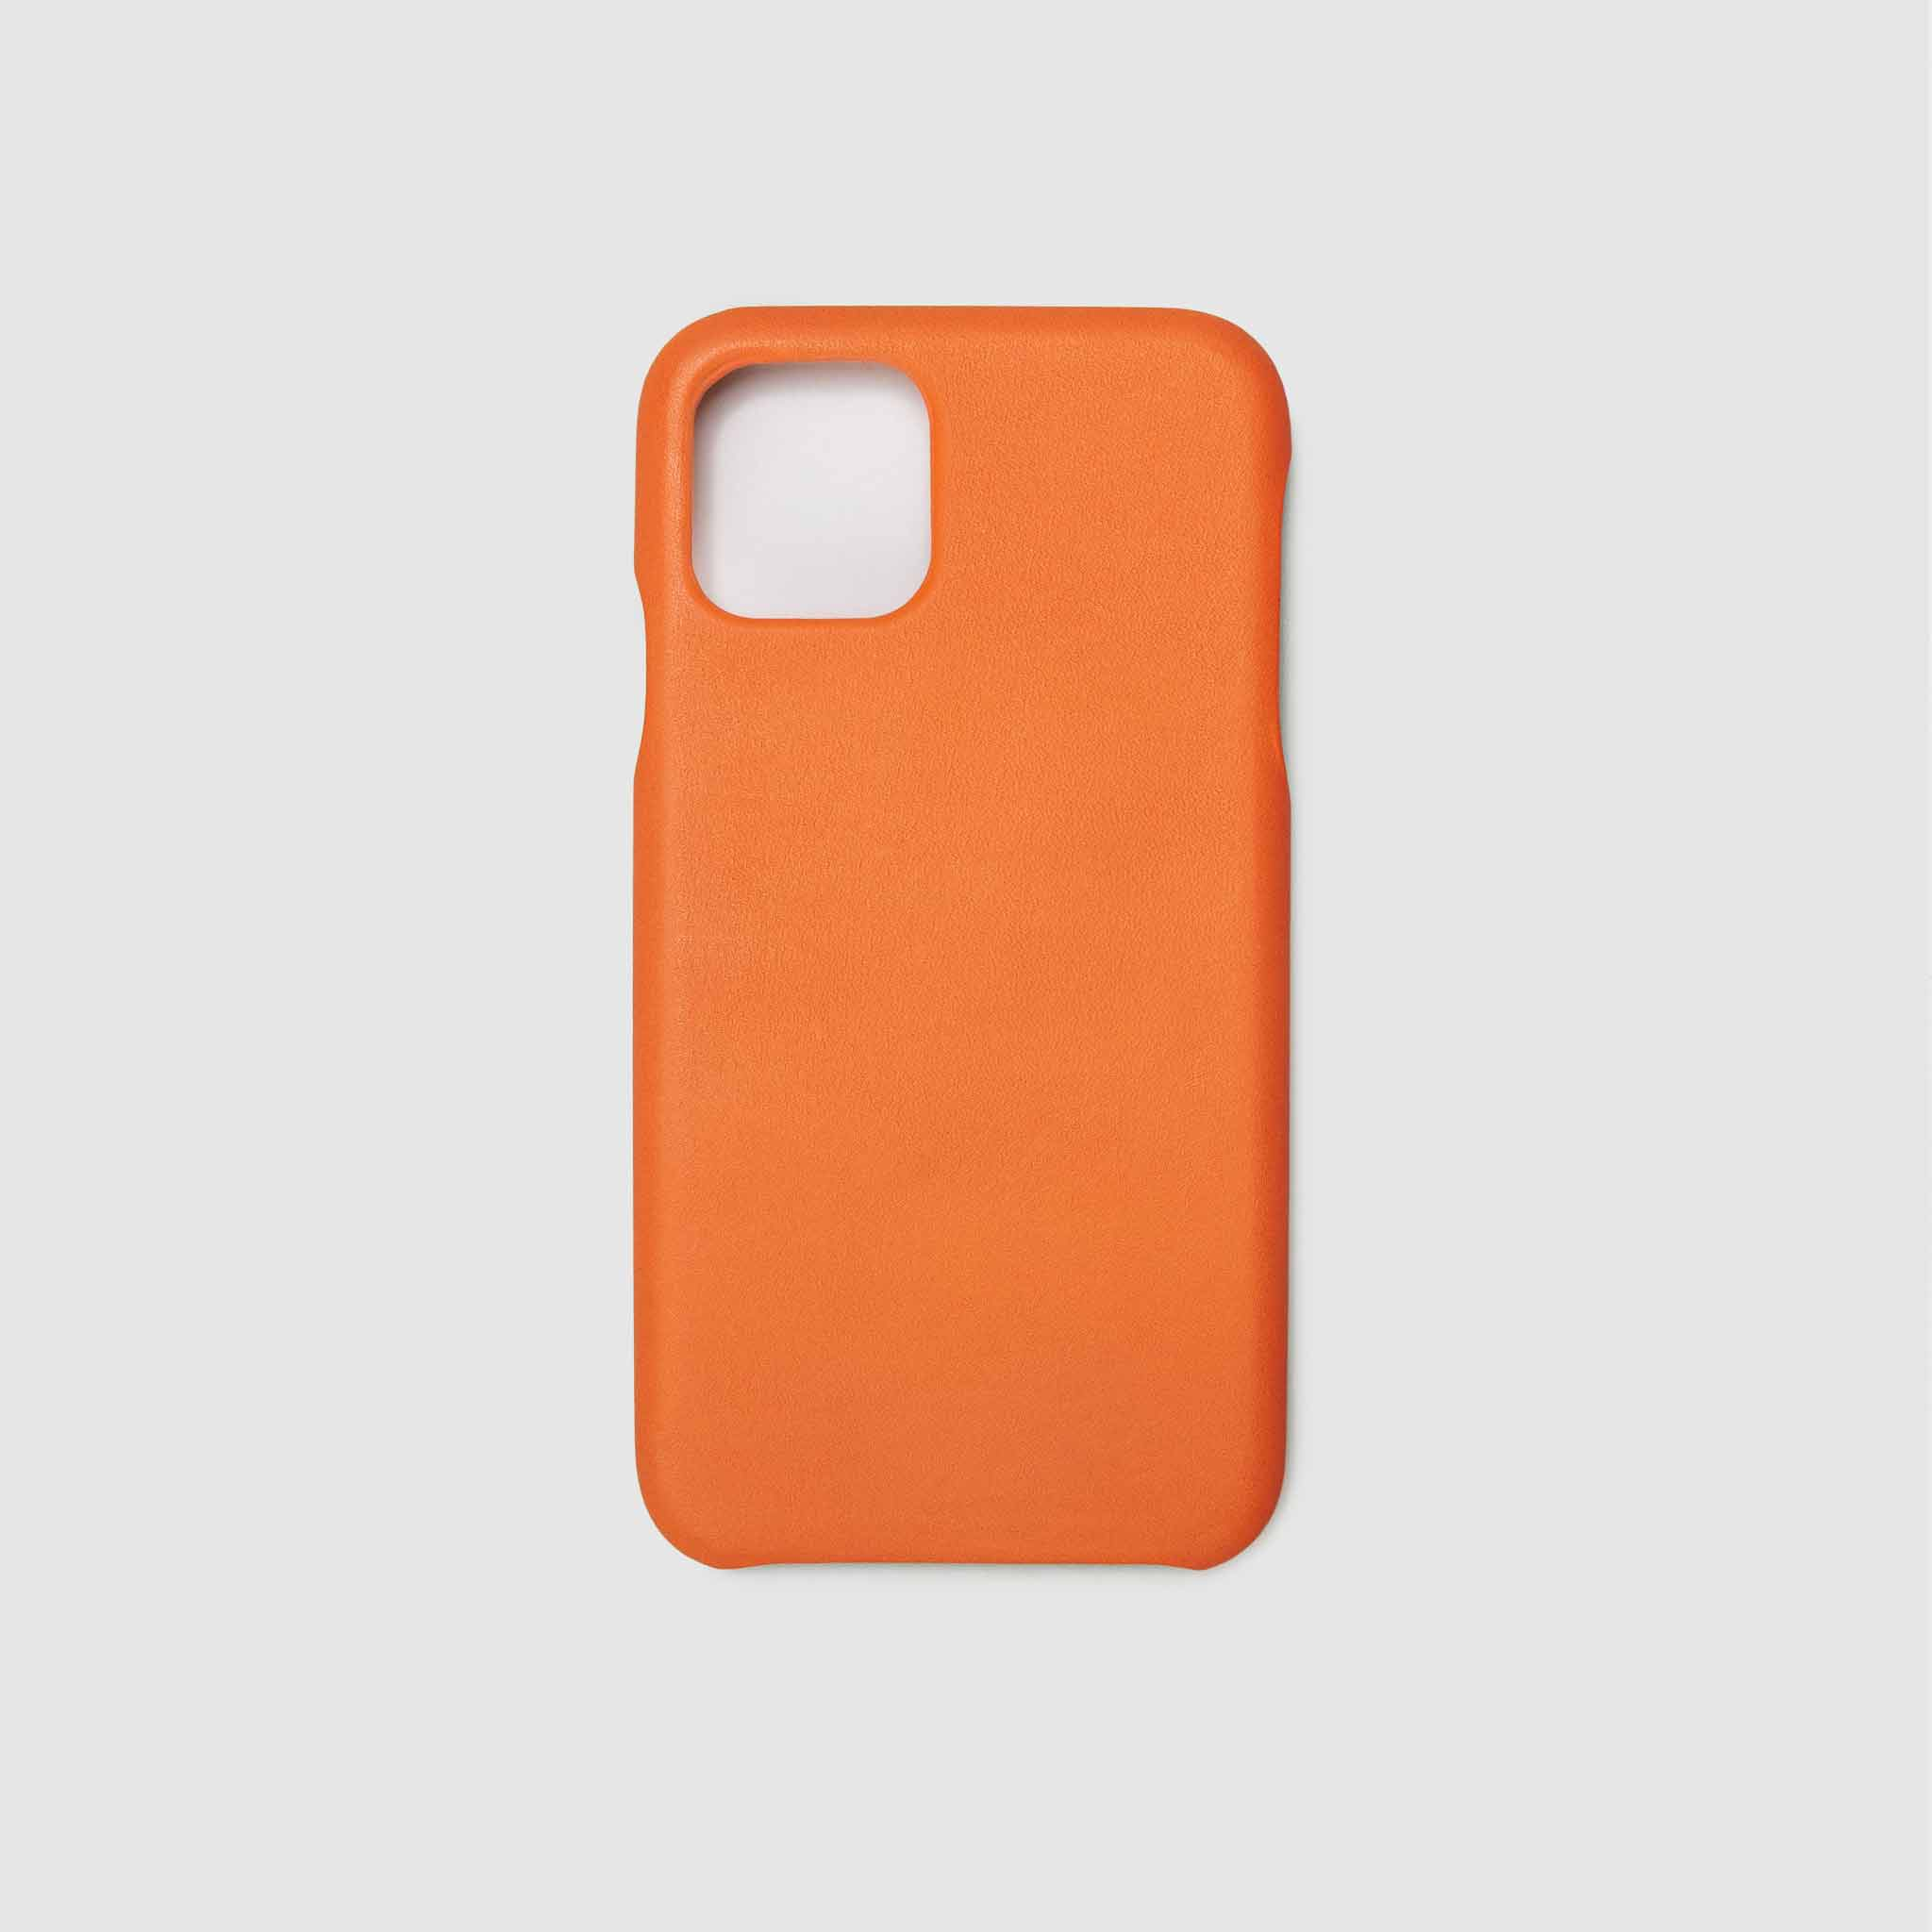 anson calder iphone case french calfskin 11 eleven pro max leather !iphone11pro-iphone11promax _fshd-orange